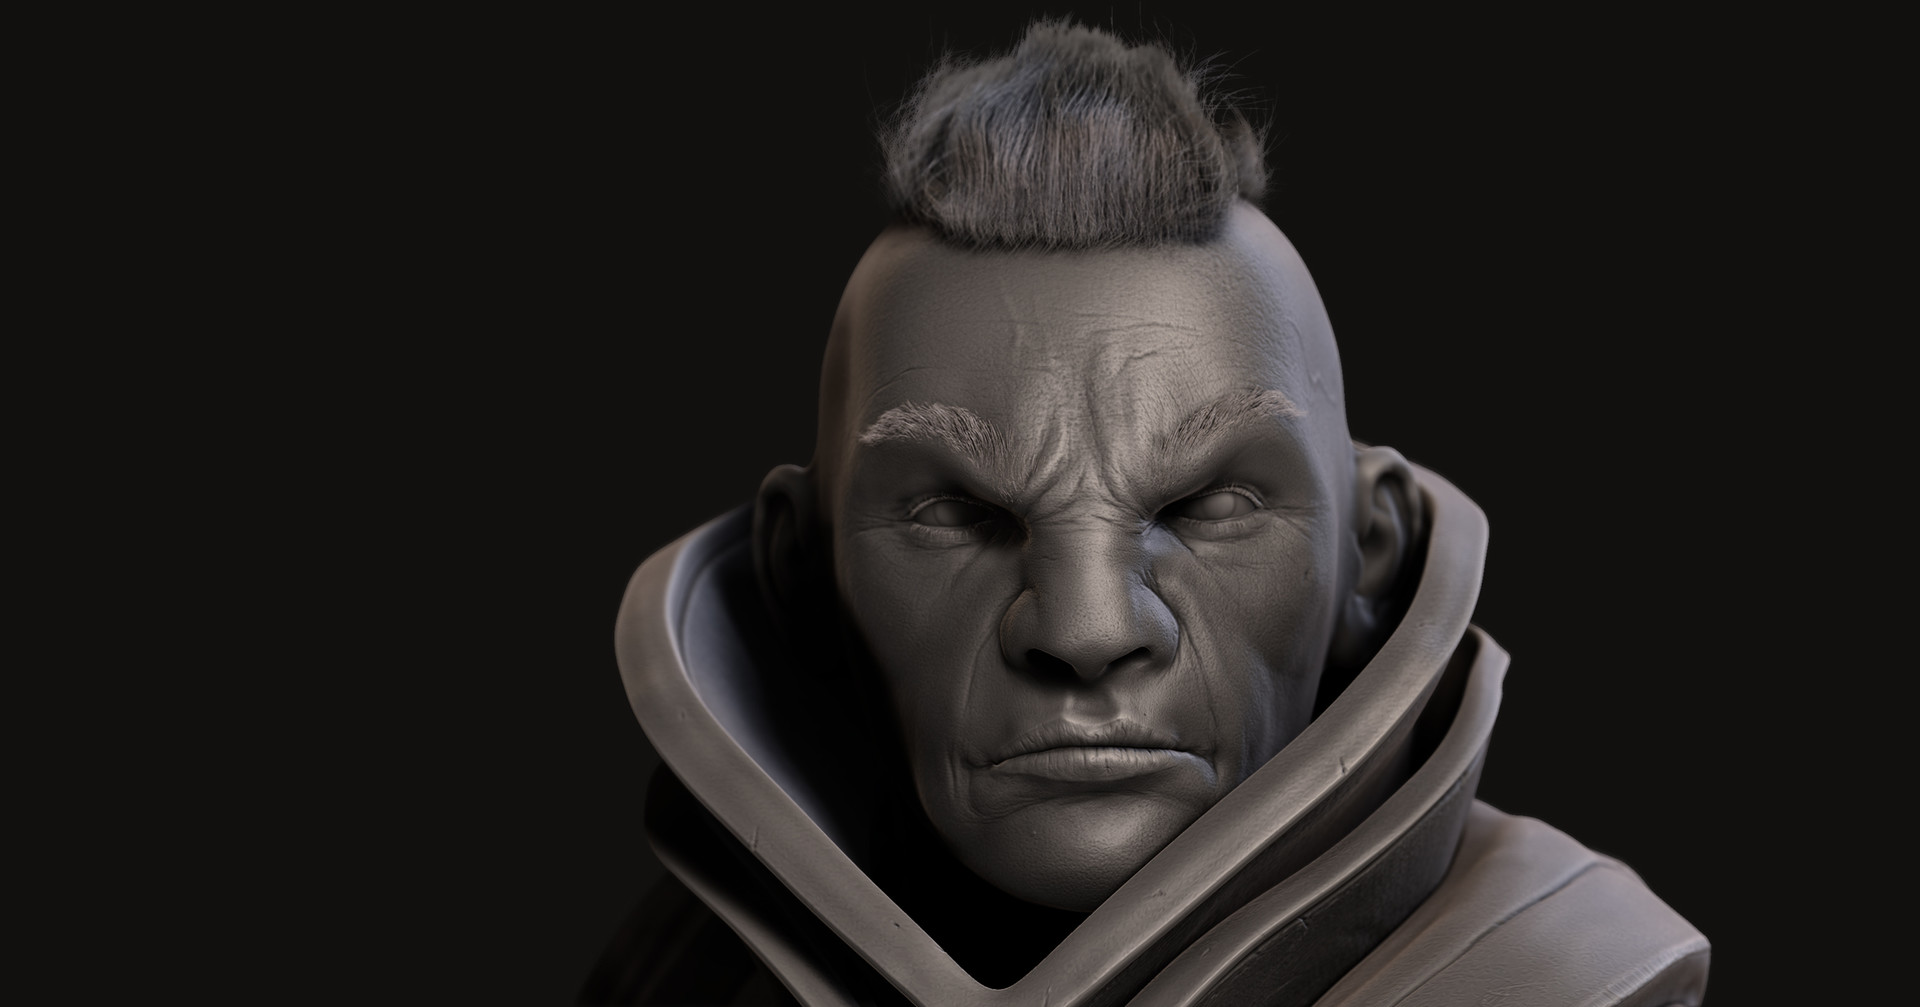 Omar chaouch antimage dota 2 fanart sculpt 06